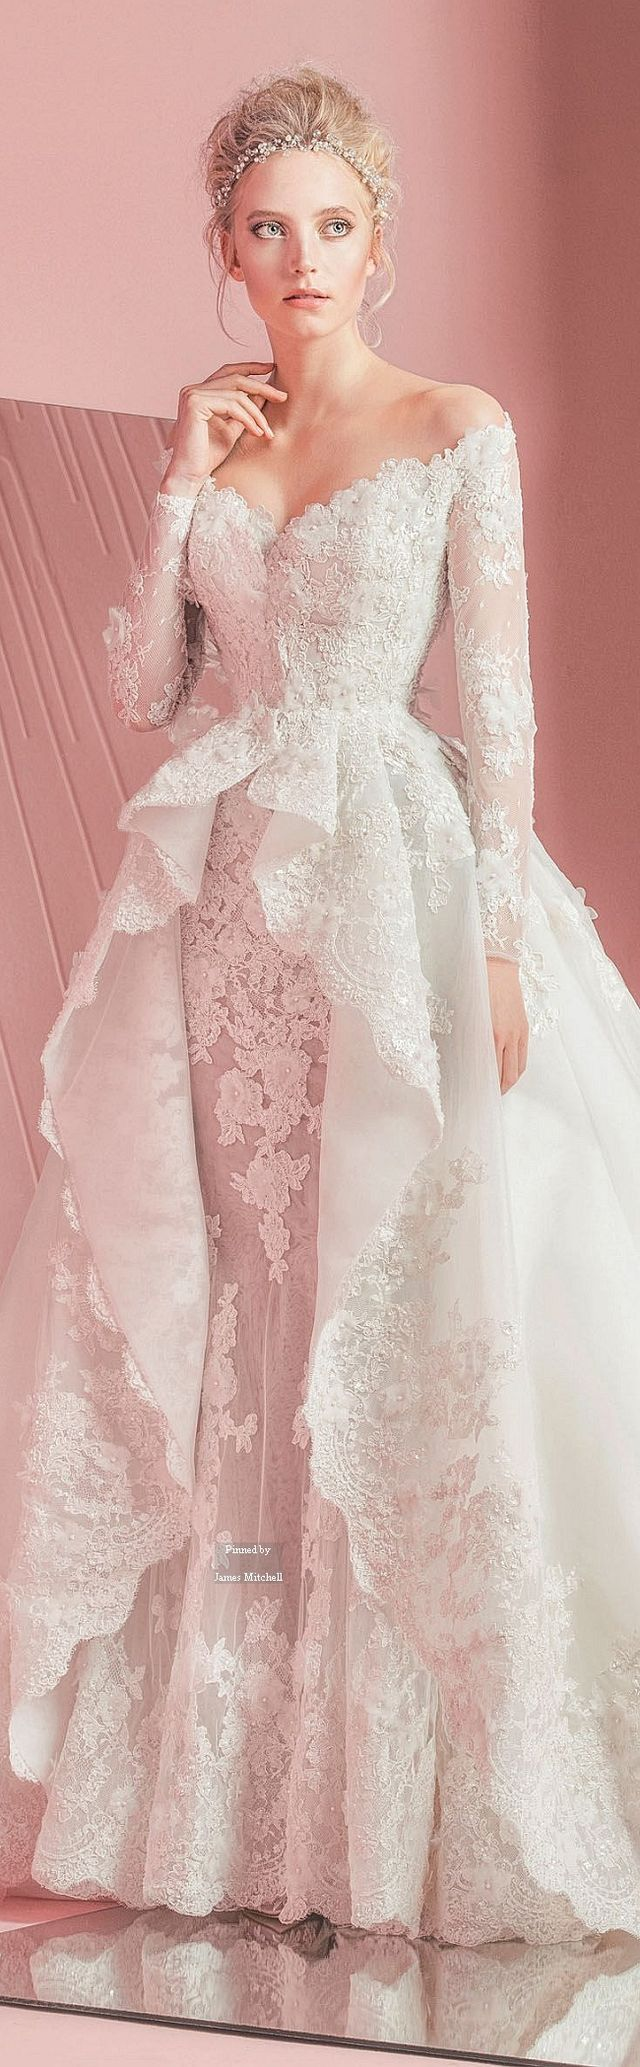 "#fashionModern Wedding Dress Ideas for 2017-2018 Fall, Winter.  Follow me on Pinterest @ Melissa Riley for more modern wedding ideas, color palates, wedding photo ideas, modern wedding makeup, modern eye makeup, modern hairstyles for the bride. Ranked # 3 on Google for ""modern eye makeup ideas""  #"